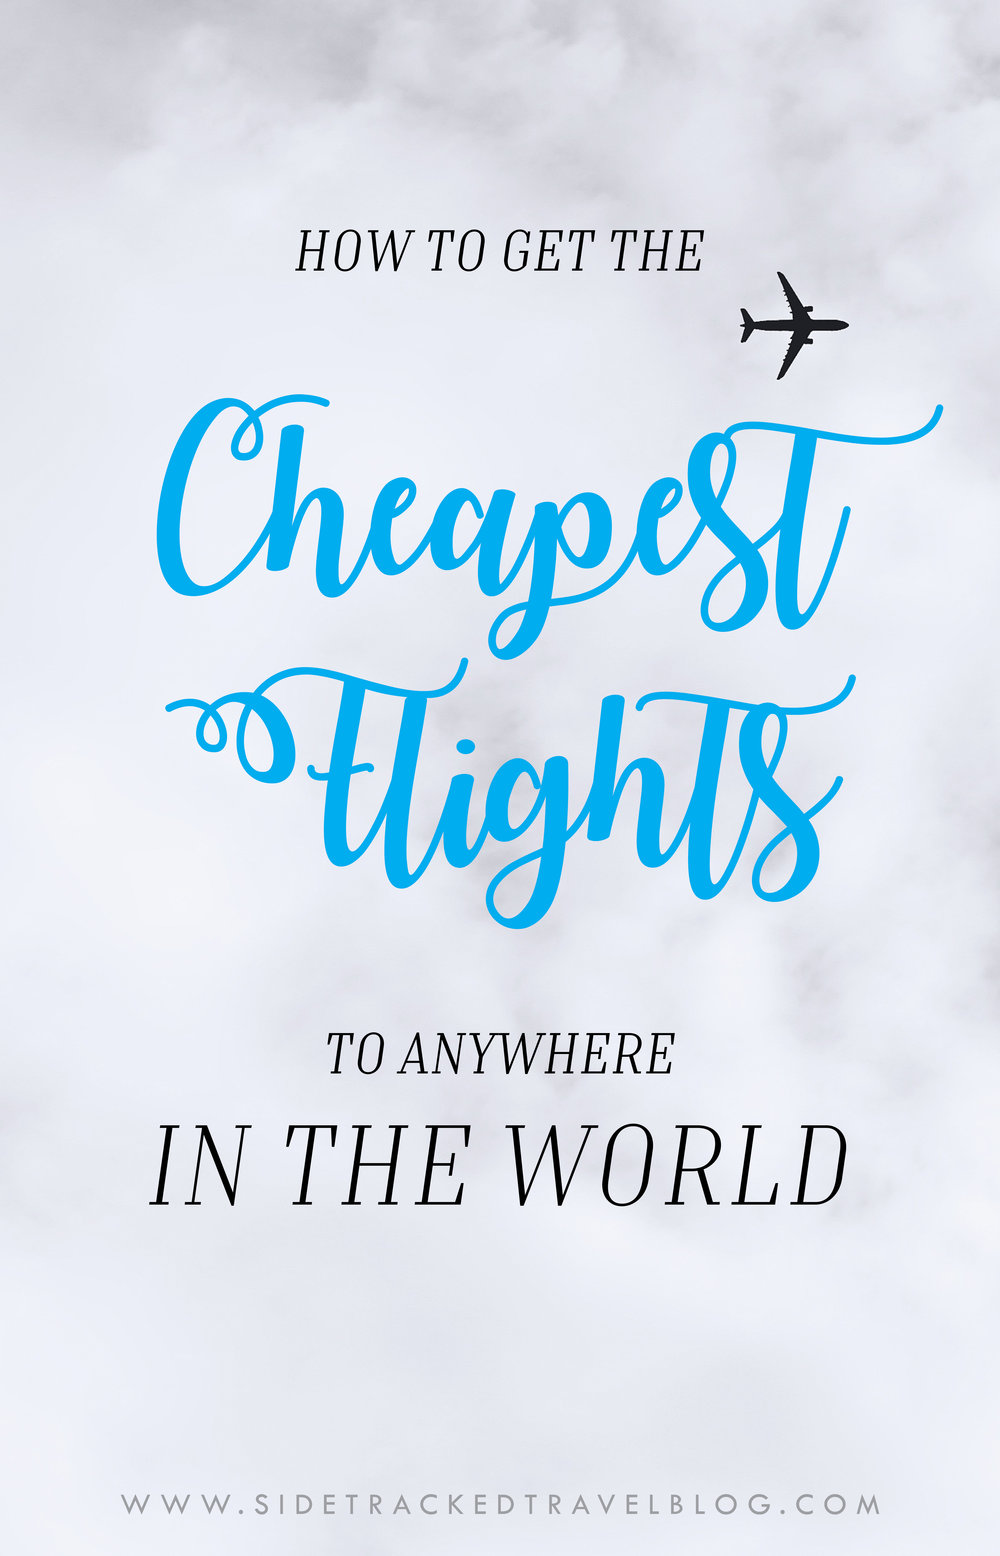 Frequent flier miles, spontaneous seat sales, credit card points programs, flight booking search engines - there is an endless vortex of options for the modern traveler to find the best deals. Here are some ways to help you find the cheapest flights to anywhere in the world!